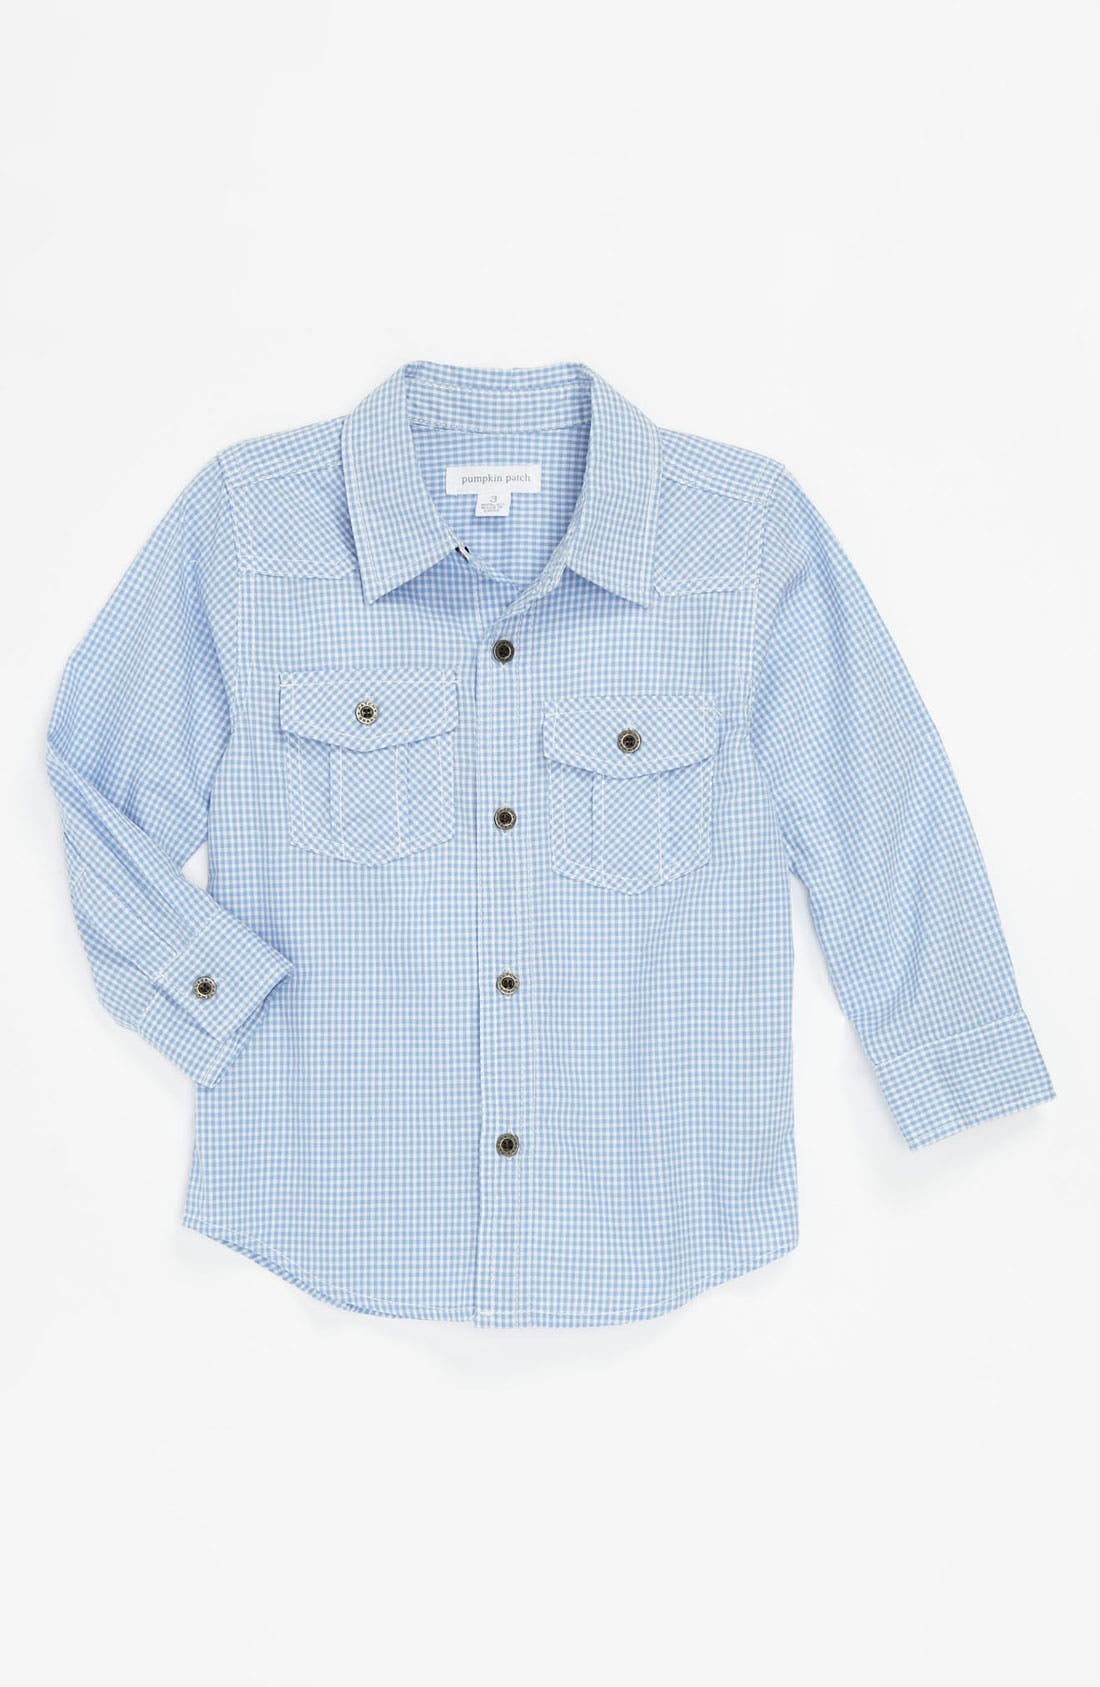 Main Image - Pumpkin Patch Gingham Shirt (Baby)